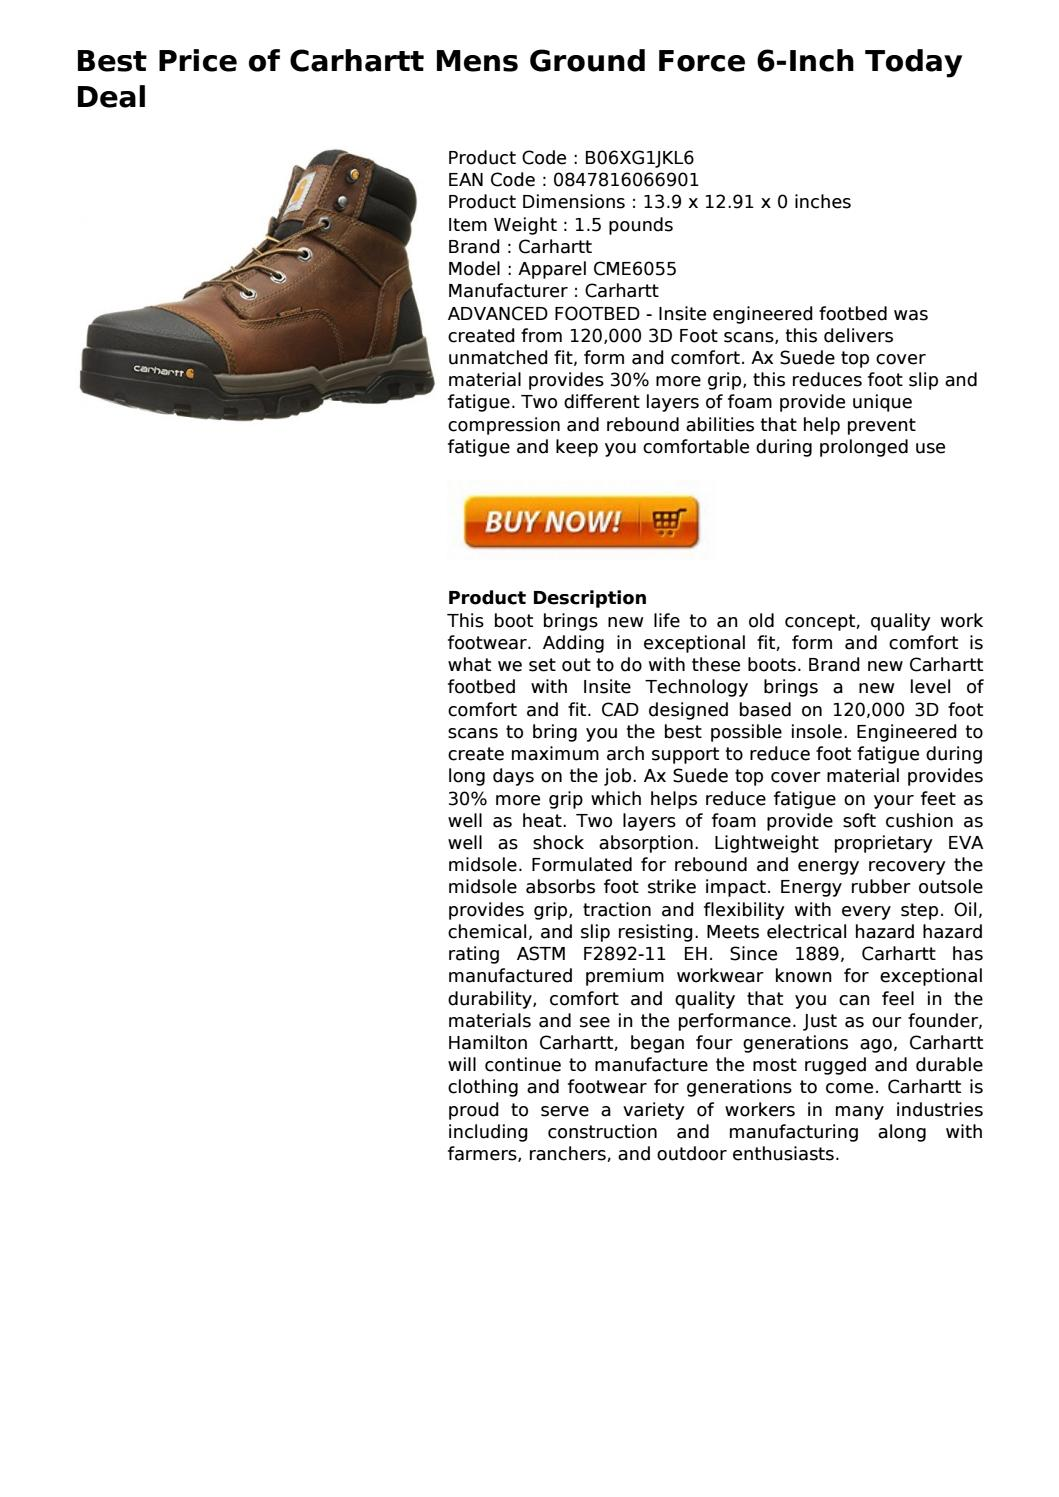 ca2c87e88ab carhartt mens ground force 6 inch today deal by ray.freeman - issuu